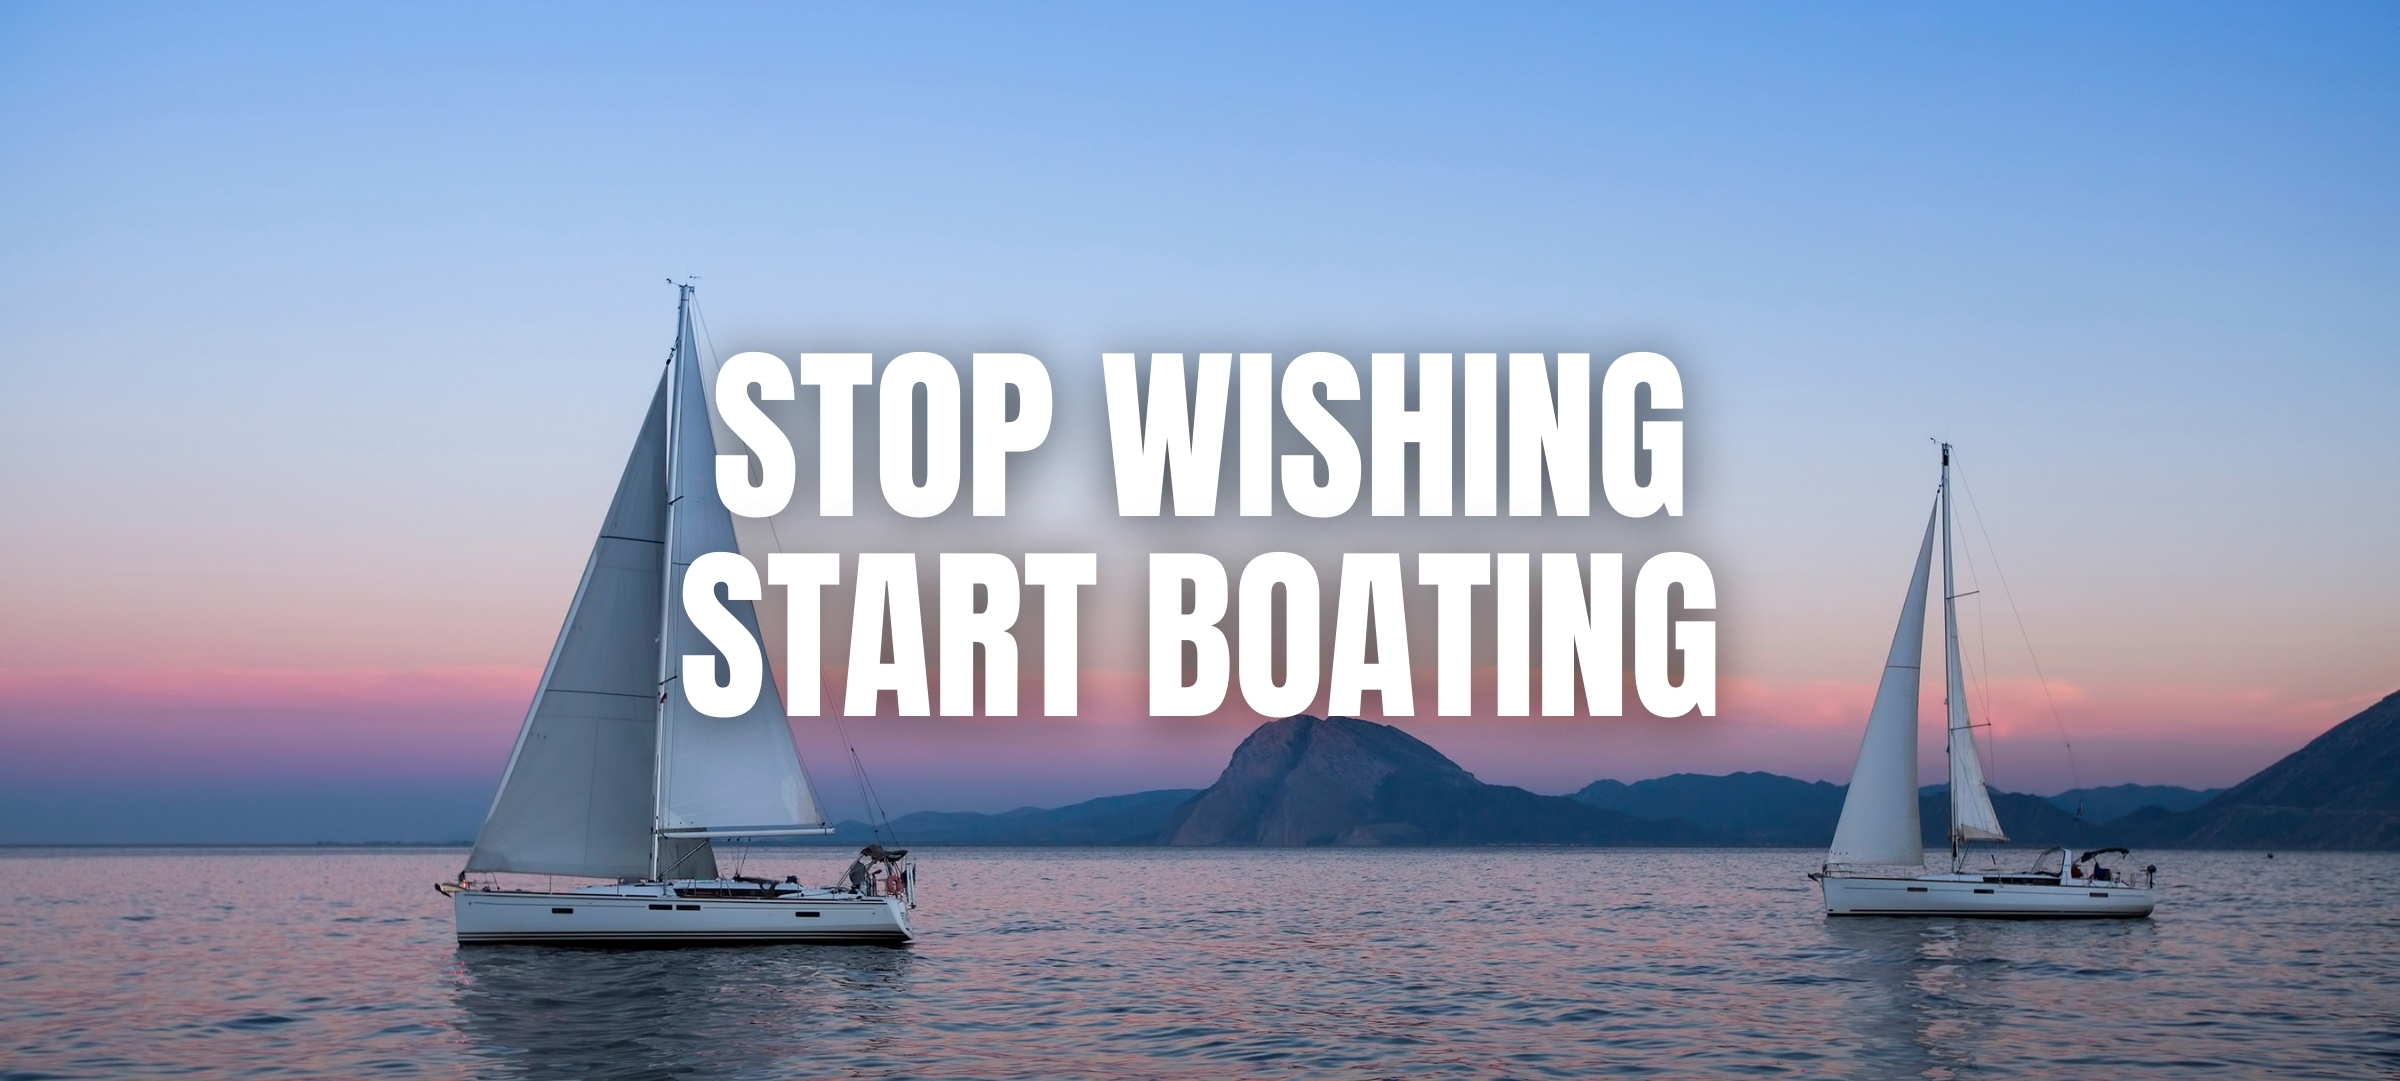 Buying a Boat - Here Are the Things You Need to Consider